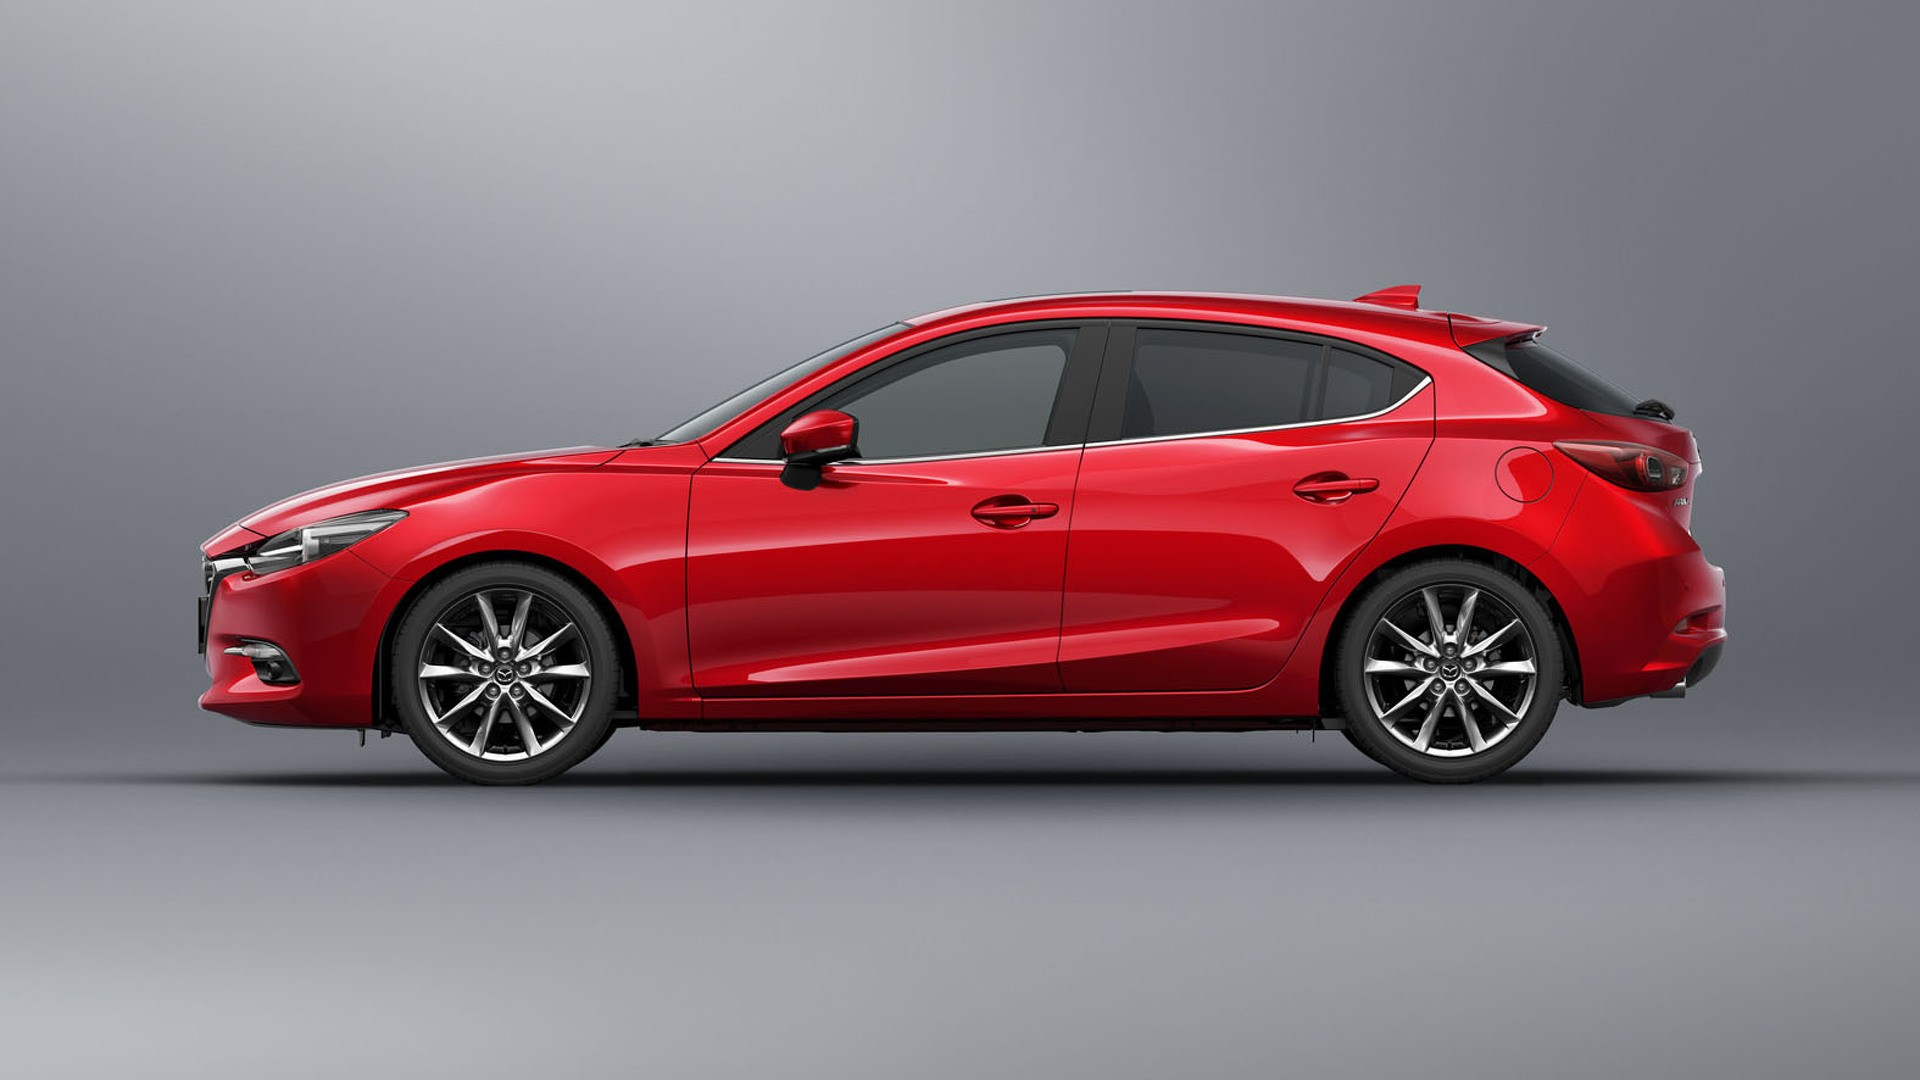 2018 Mazda3 In For Mild Updates All New Model With Hcci Engine In